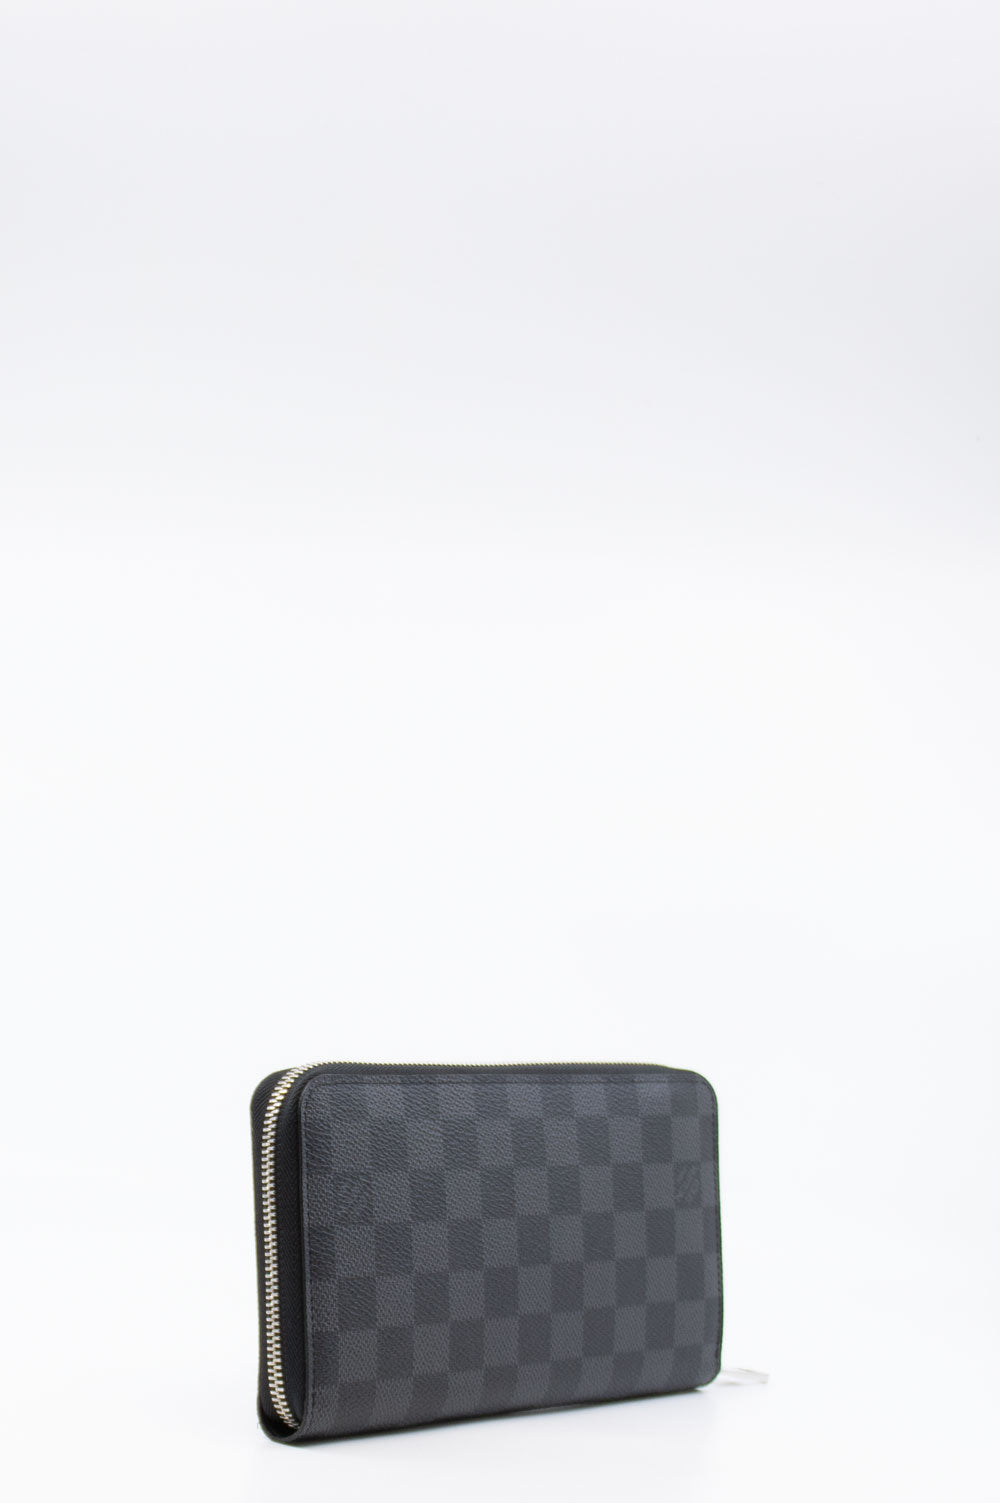 LOUIS VUITTON Zippy Organizer